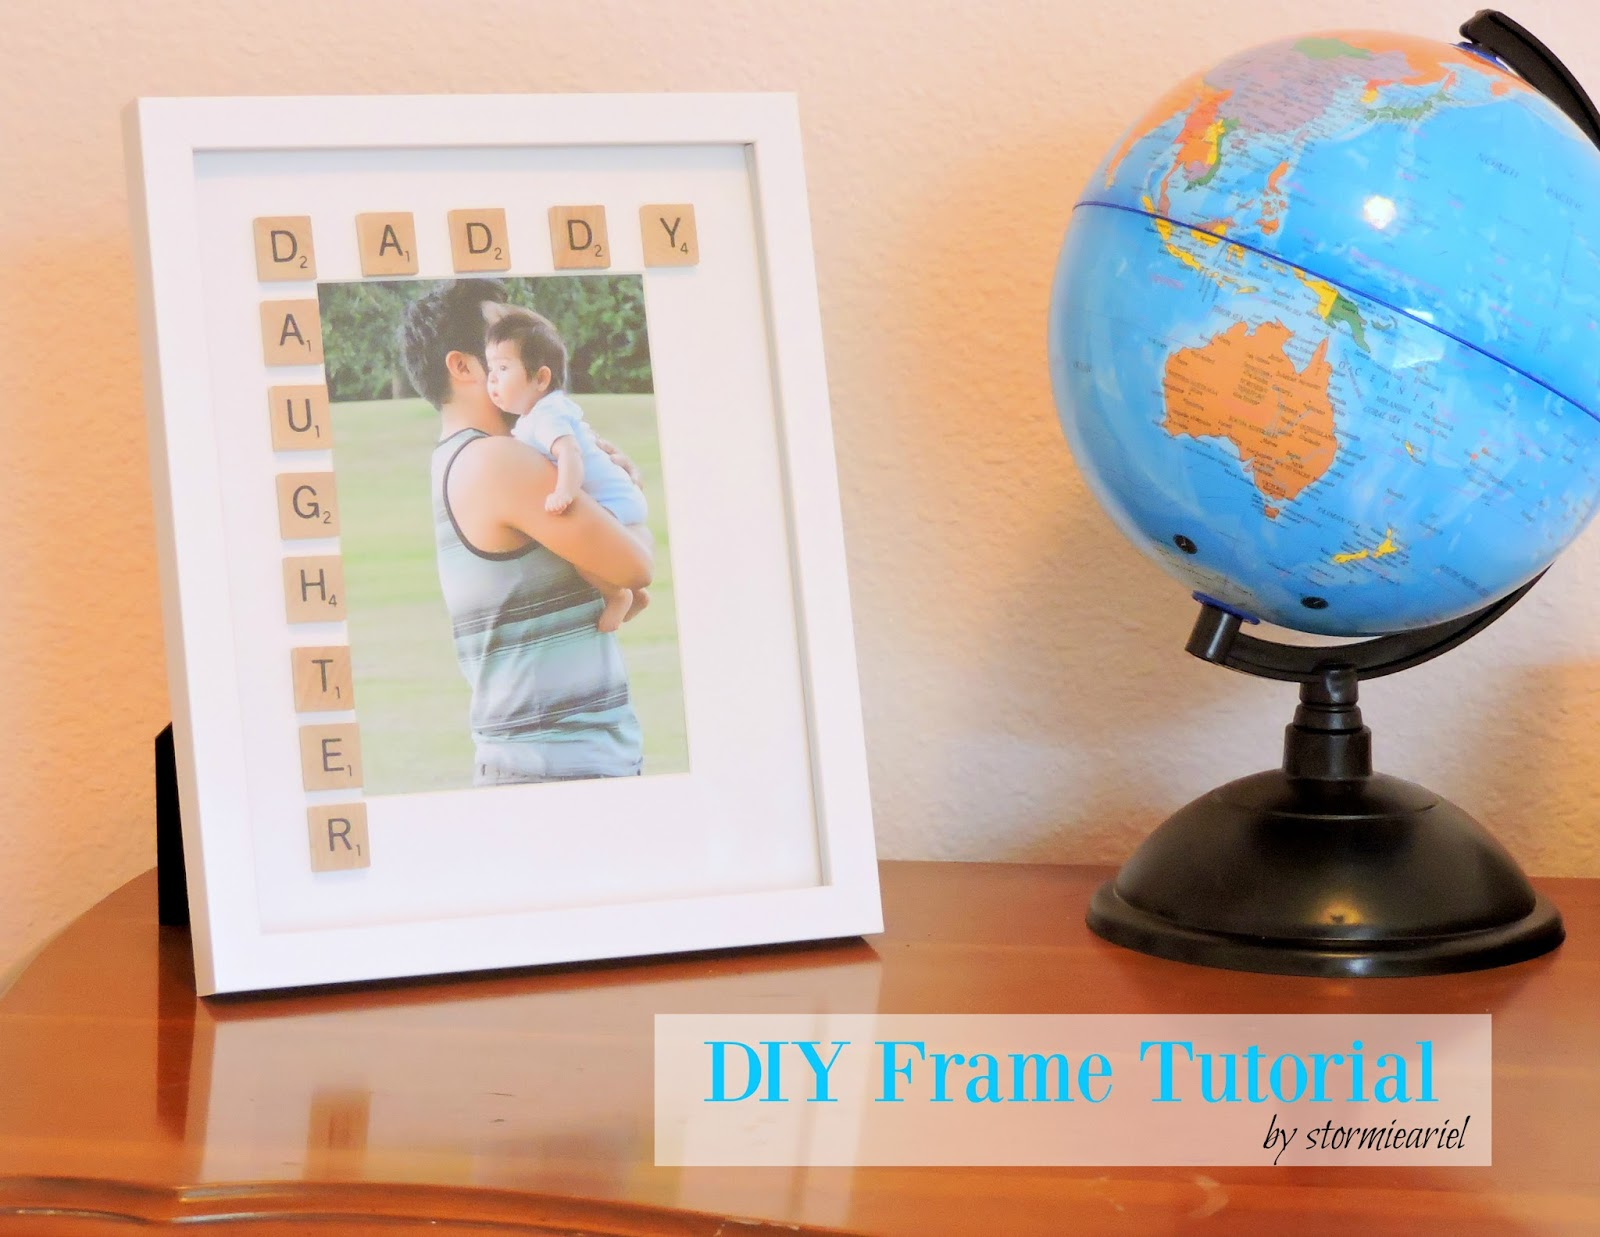 DIY Frame Tutorial